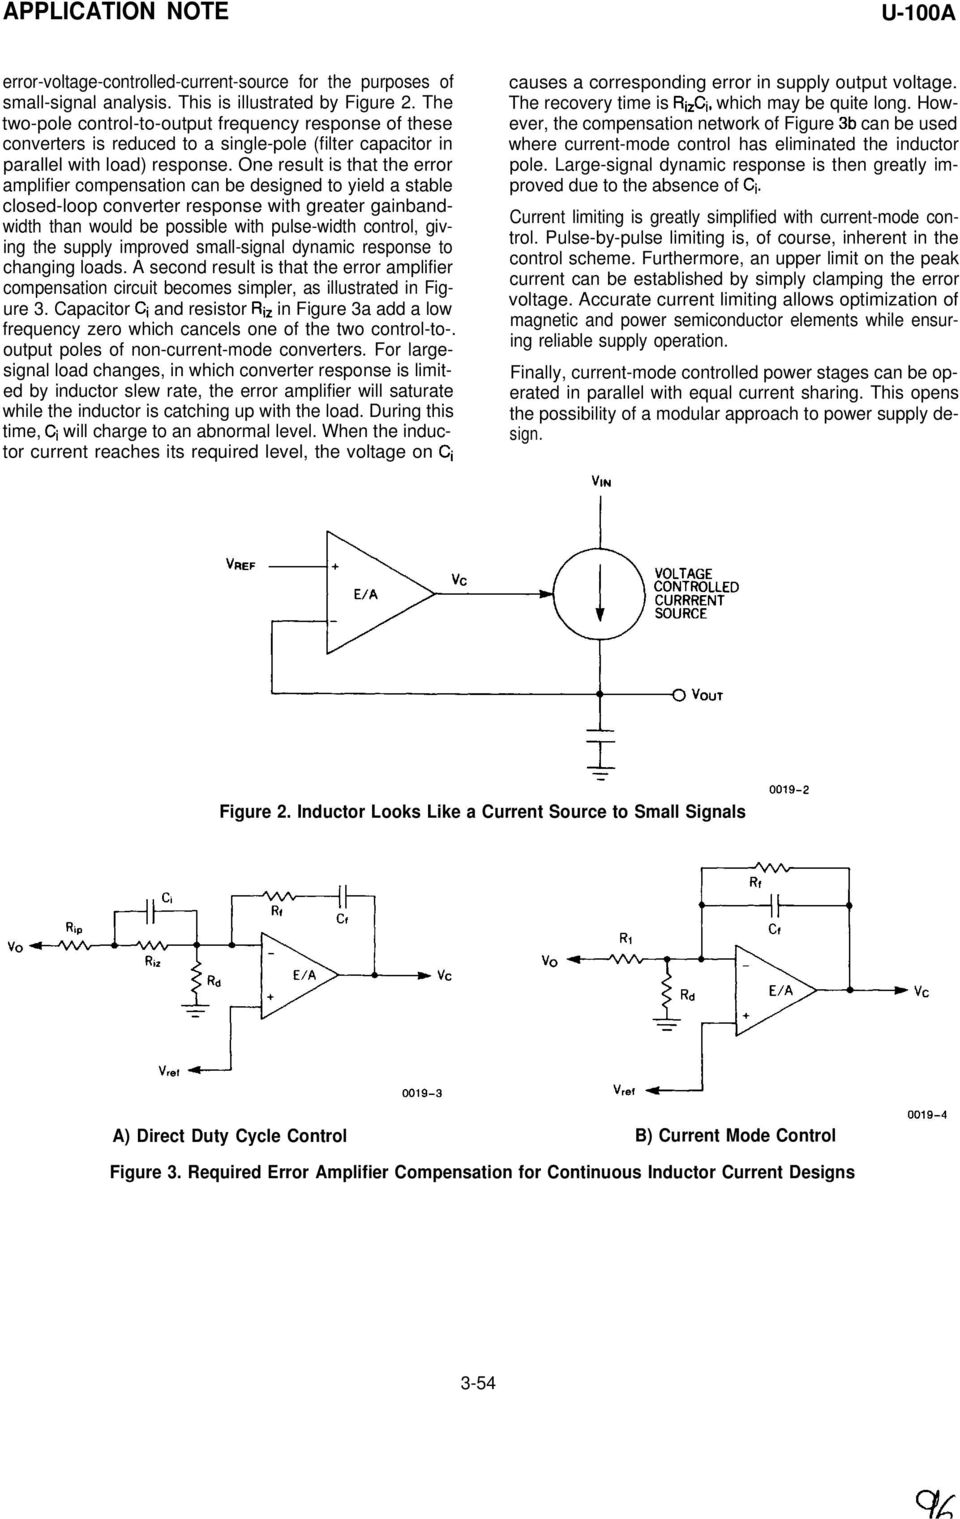 Application Note Uc3842 3 4 5 Provides Low Cost Current Mode Control Figure 2 Schematic Of The Led Driver Reference Design One Result Is That Error Amplifier Compensation Can Be Designed To Yield A Stable Closed